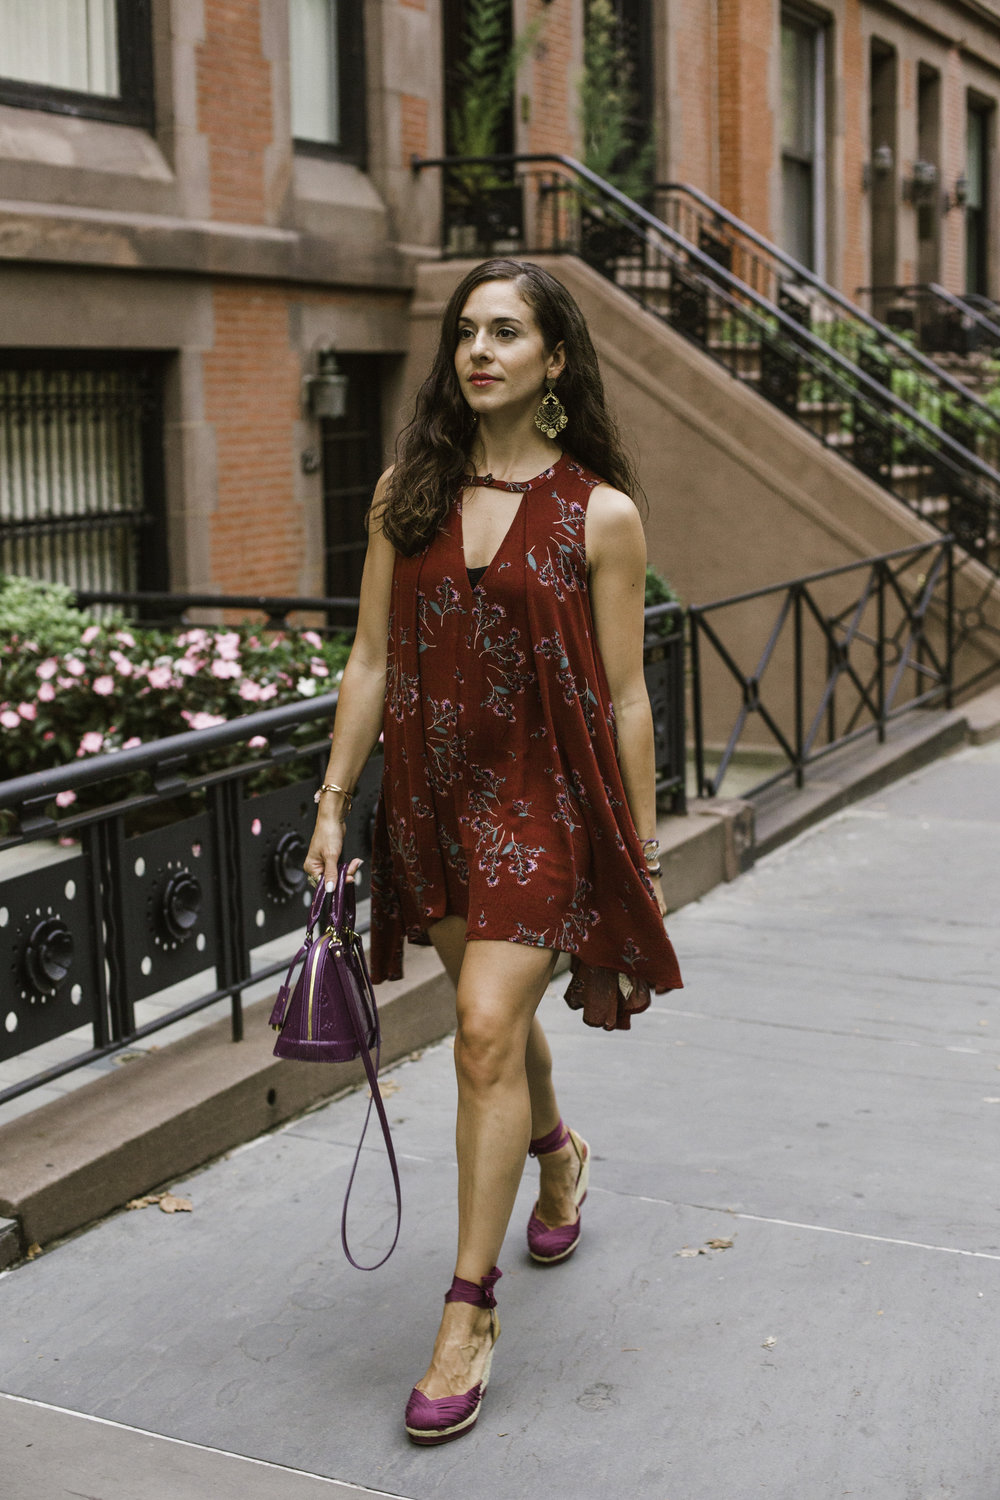 Wearing my Free People Tree Swing Sleeveless Printed Top as a dress (because I have a short torso don't judge me), Gap espadrille wedges in a plum color with matching plum Louis Vuitton Mini alma bag. Photography by Francisco Graciano.